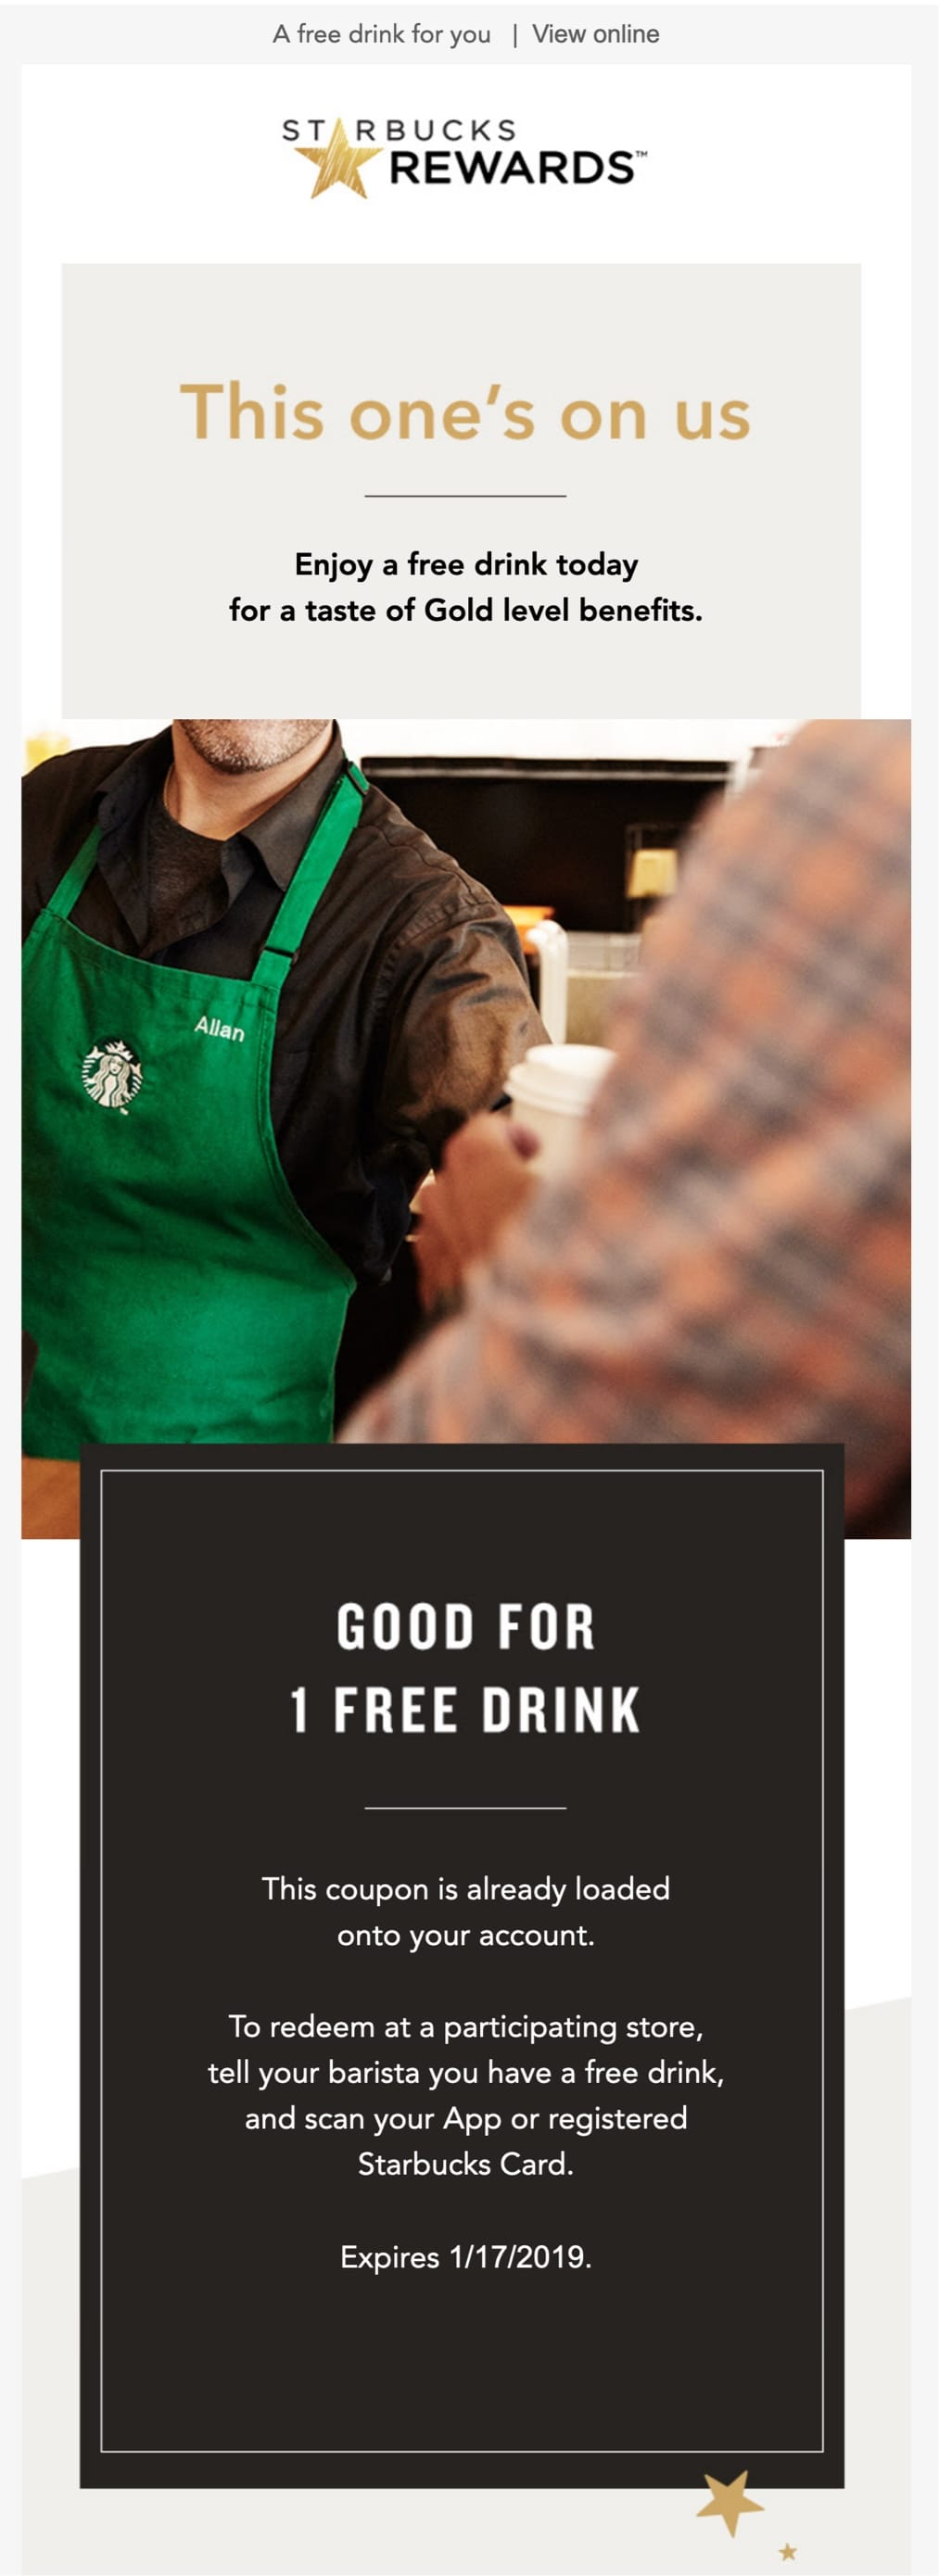 email-marketing-best-practices-starbucks-free-coffee